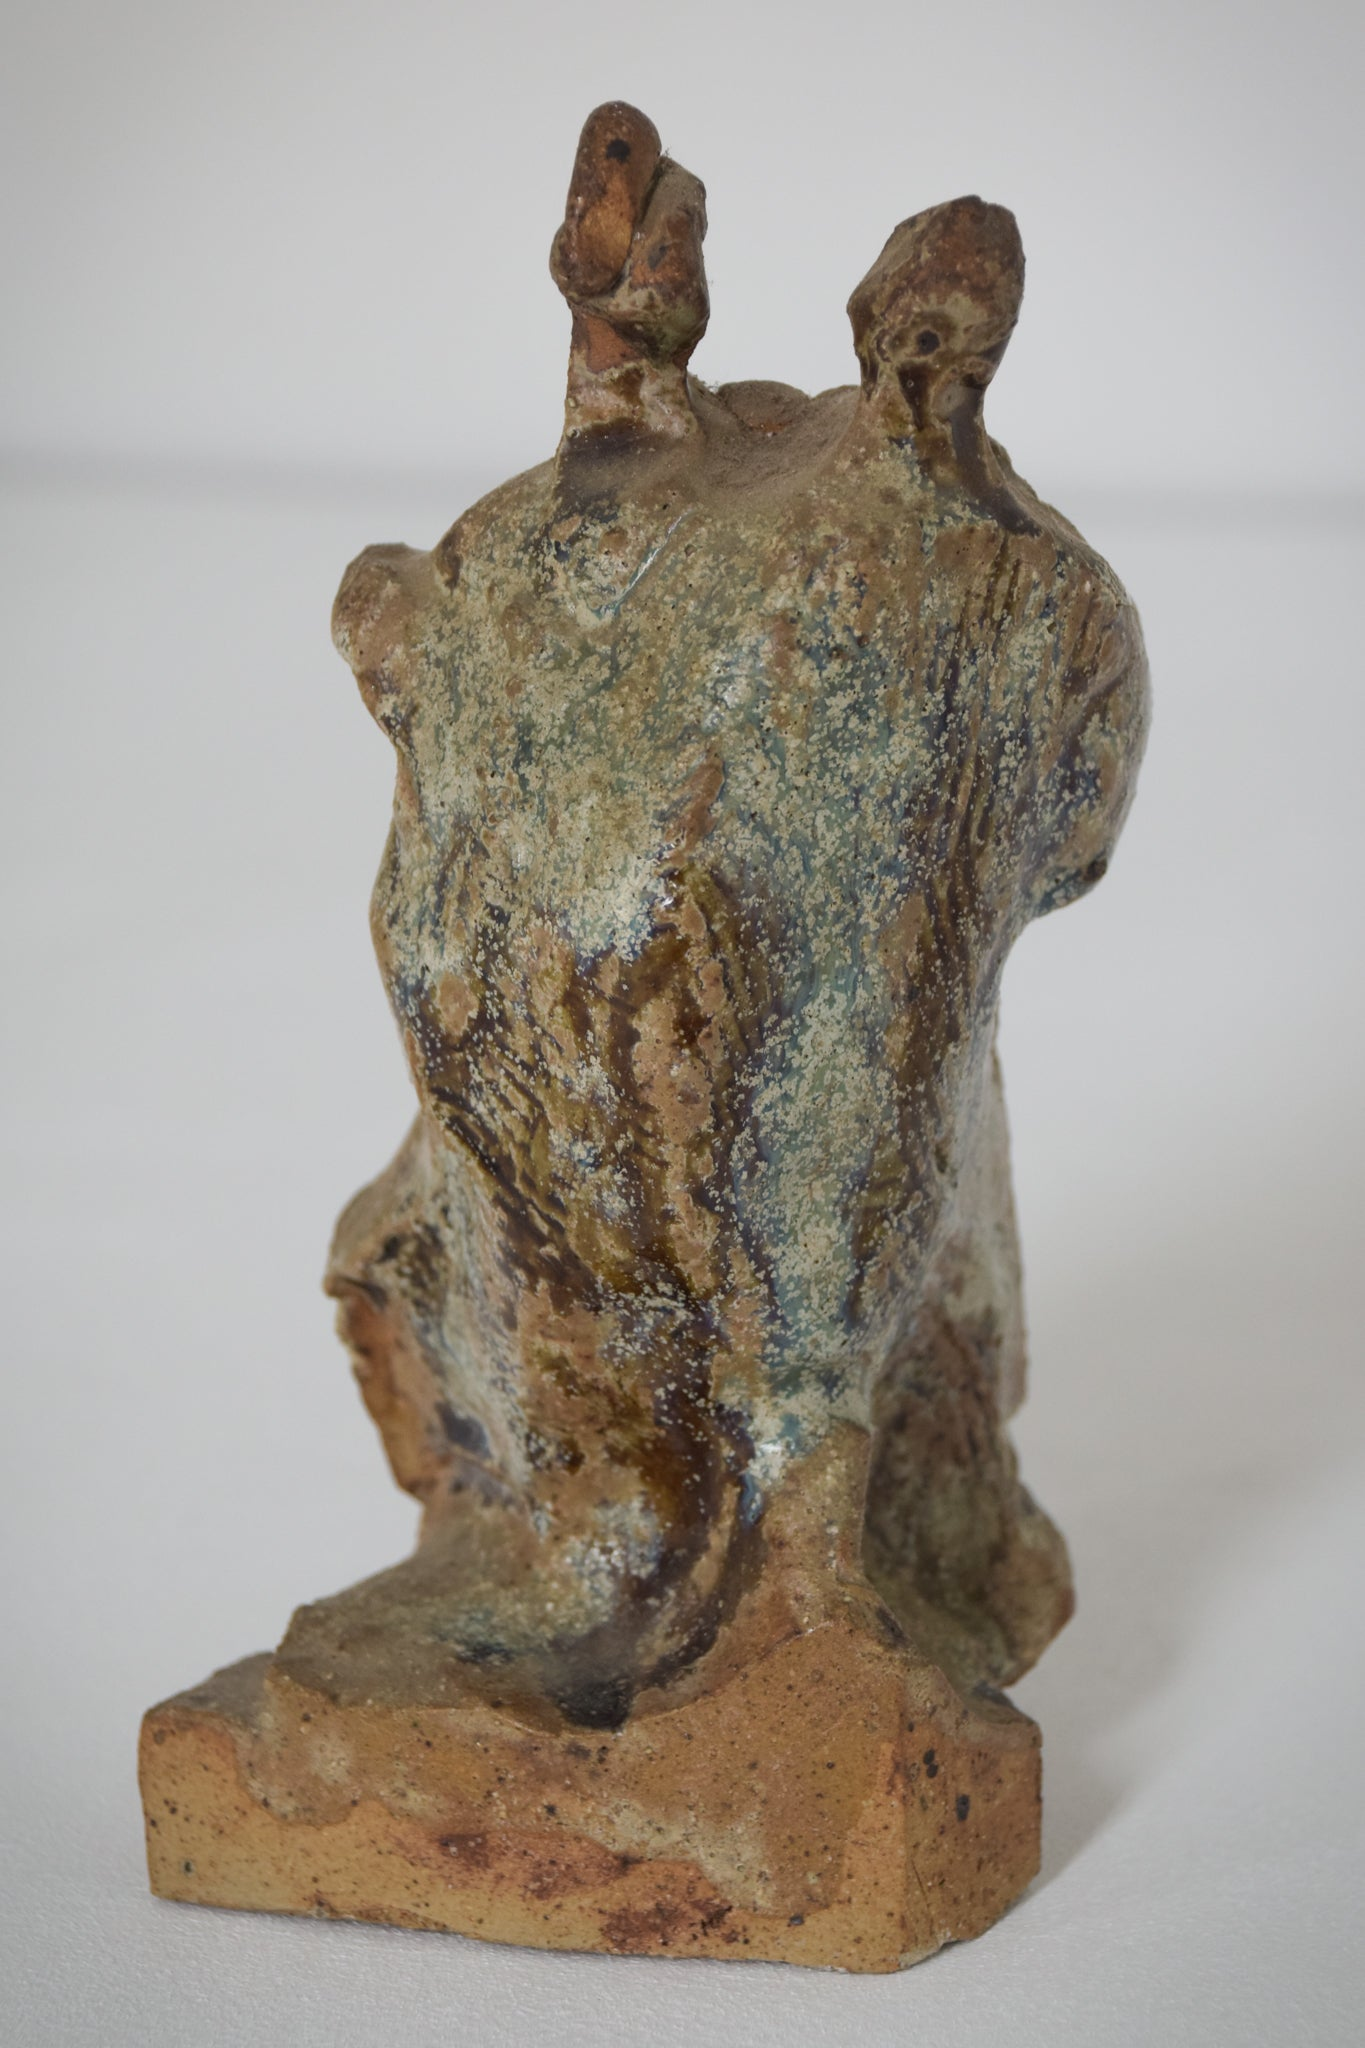 Sculpture of a Figure Playing an Instrument in an Abstract Style_Back 2